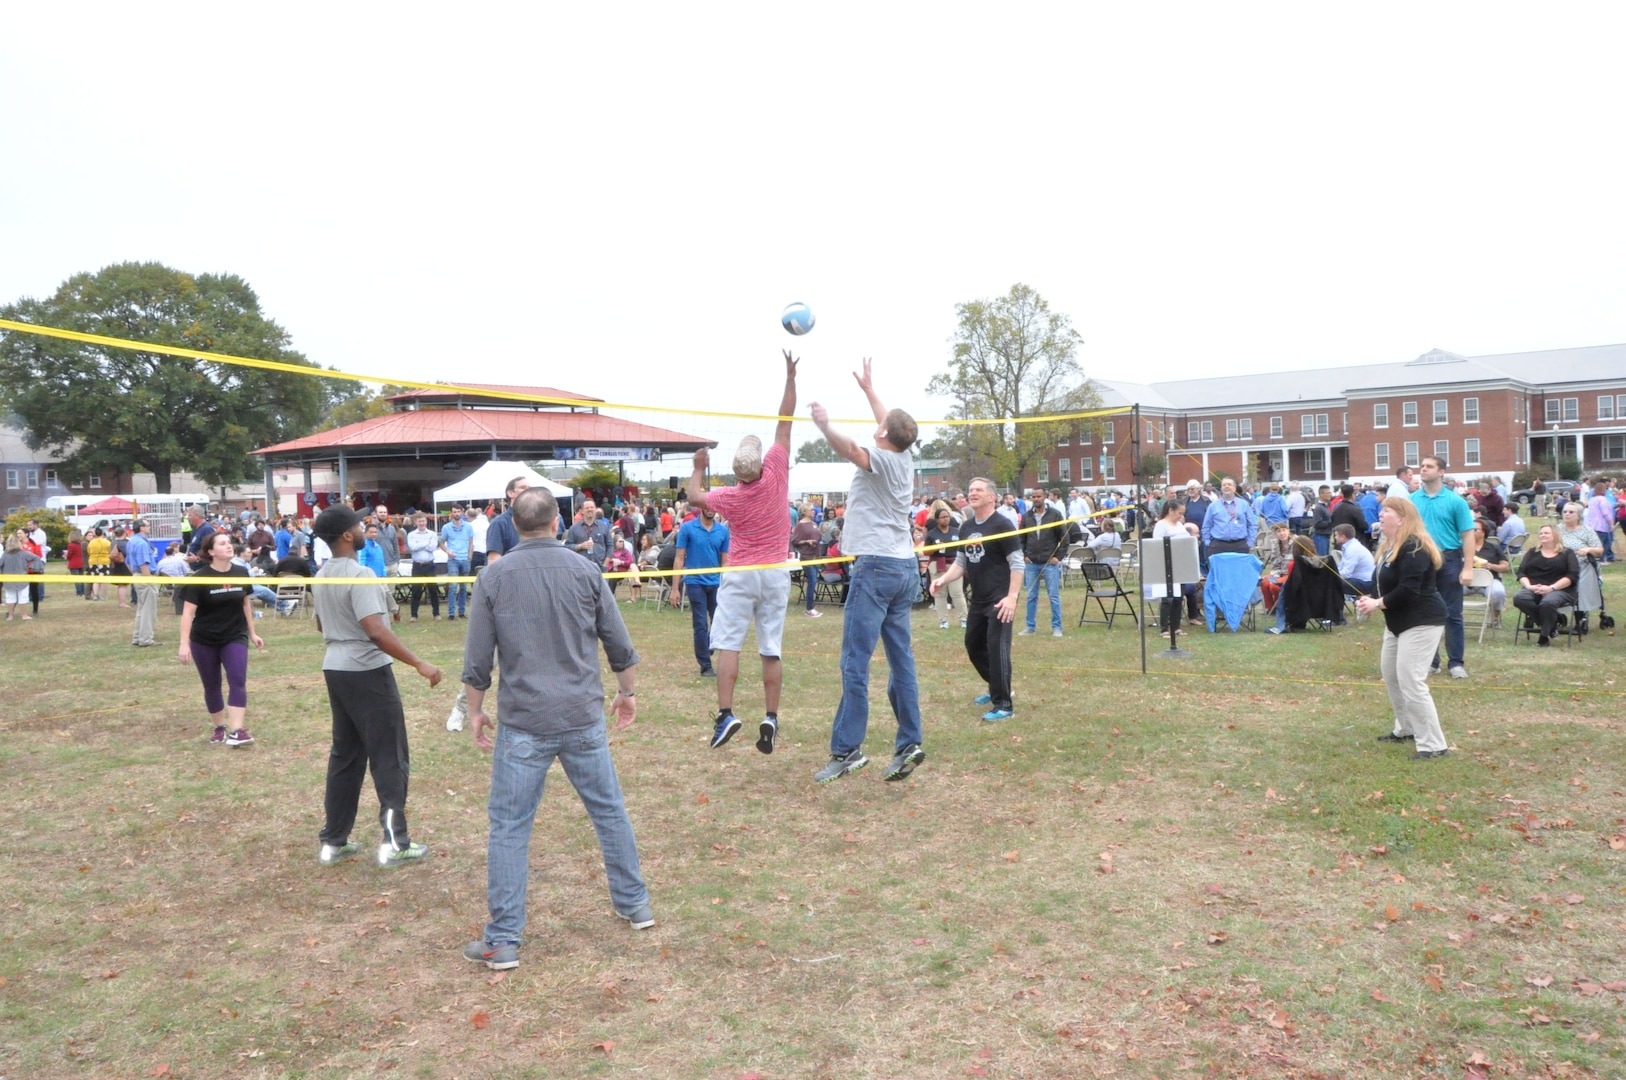 IMAGE: DAHLGREN, Va. (Oct. 30, 2019) – Naval Surface Warfare Center Dahlgren Division employees play volleyball during the 2019 command picnic. (U.S. Navy photo/Released)